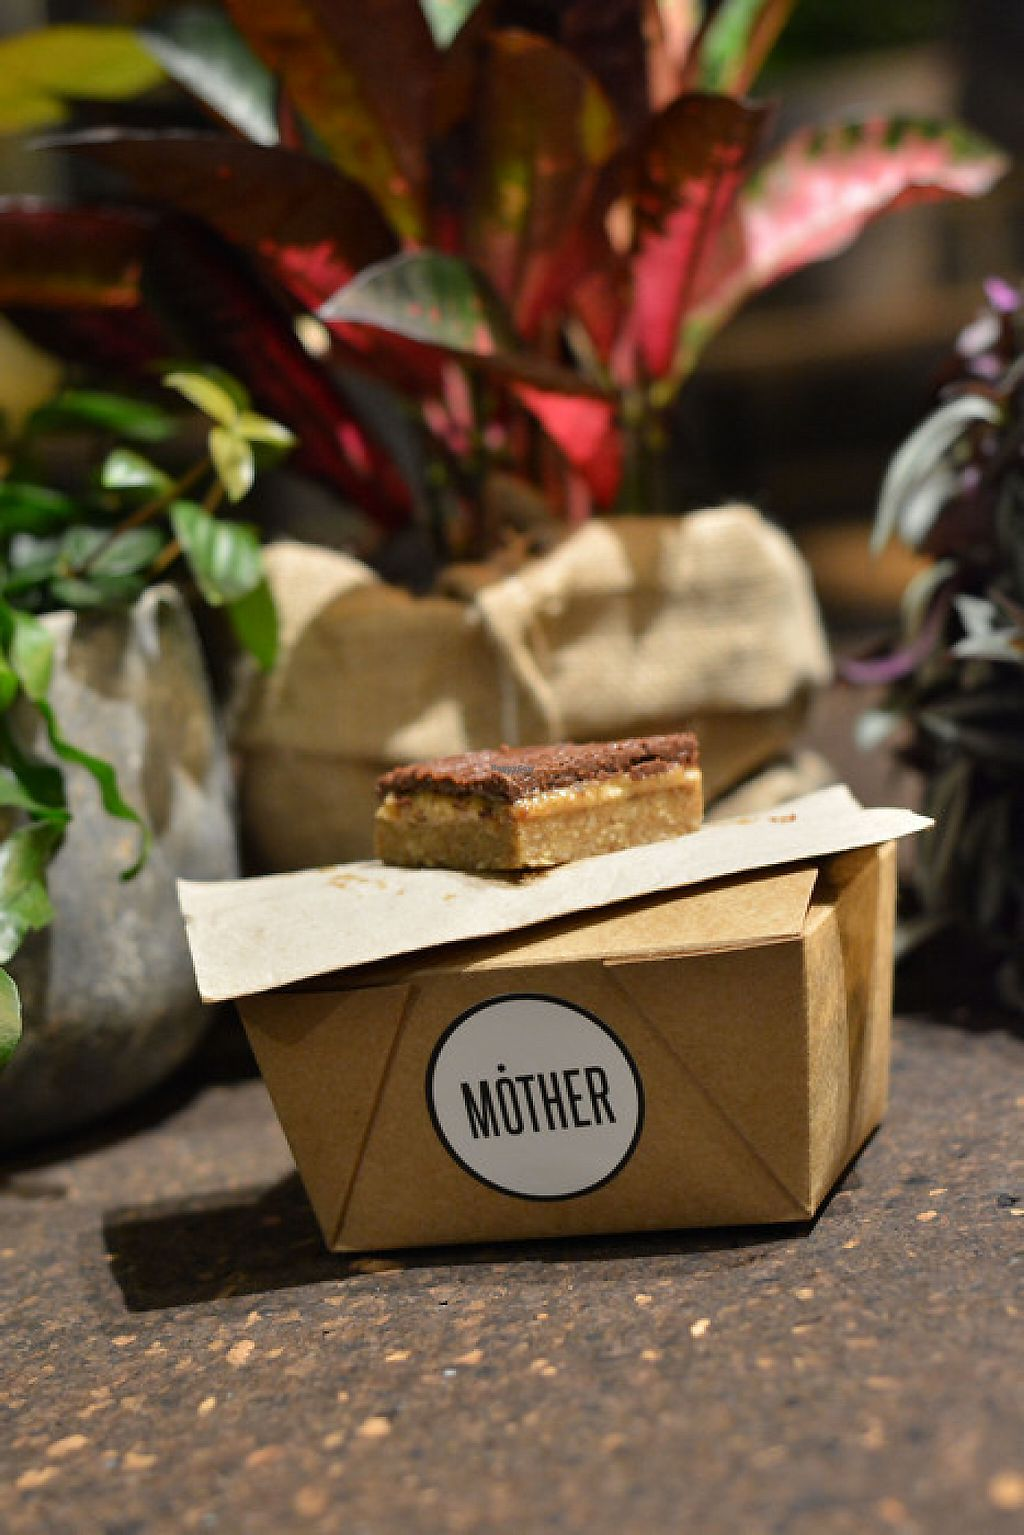 """Photo of MOTHER - Juice Works  by <a href=""""/members/profile/PatrickHill"""">PatrickHill</a> <br/>Salted Caramel Slice  (raw - tahini caramel - no dairy - no refined sugar - pure joy) <br/> November 28, 2016  - <a href='/contact/abuse/image/83205/195385'>Report</a>"""